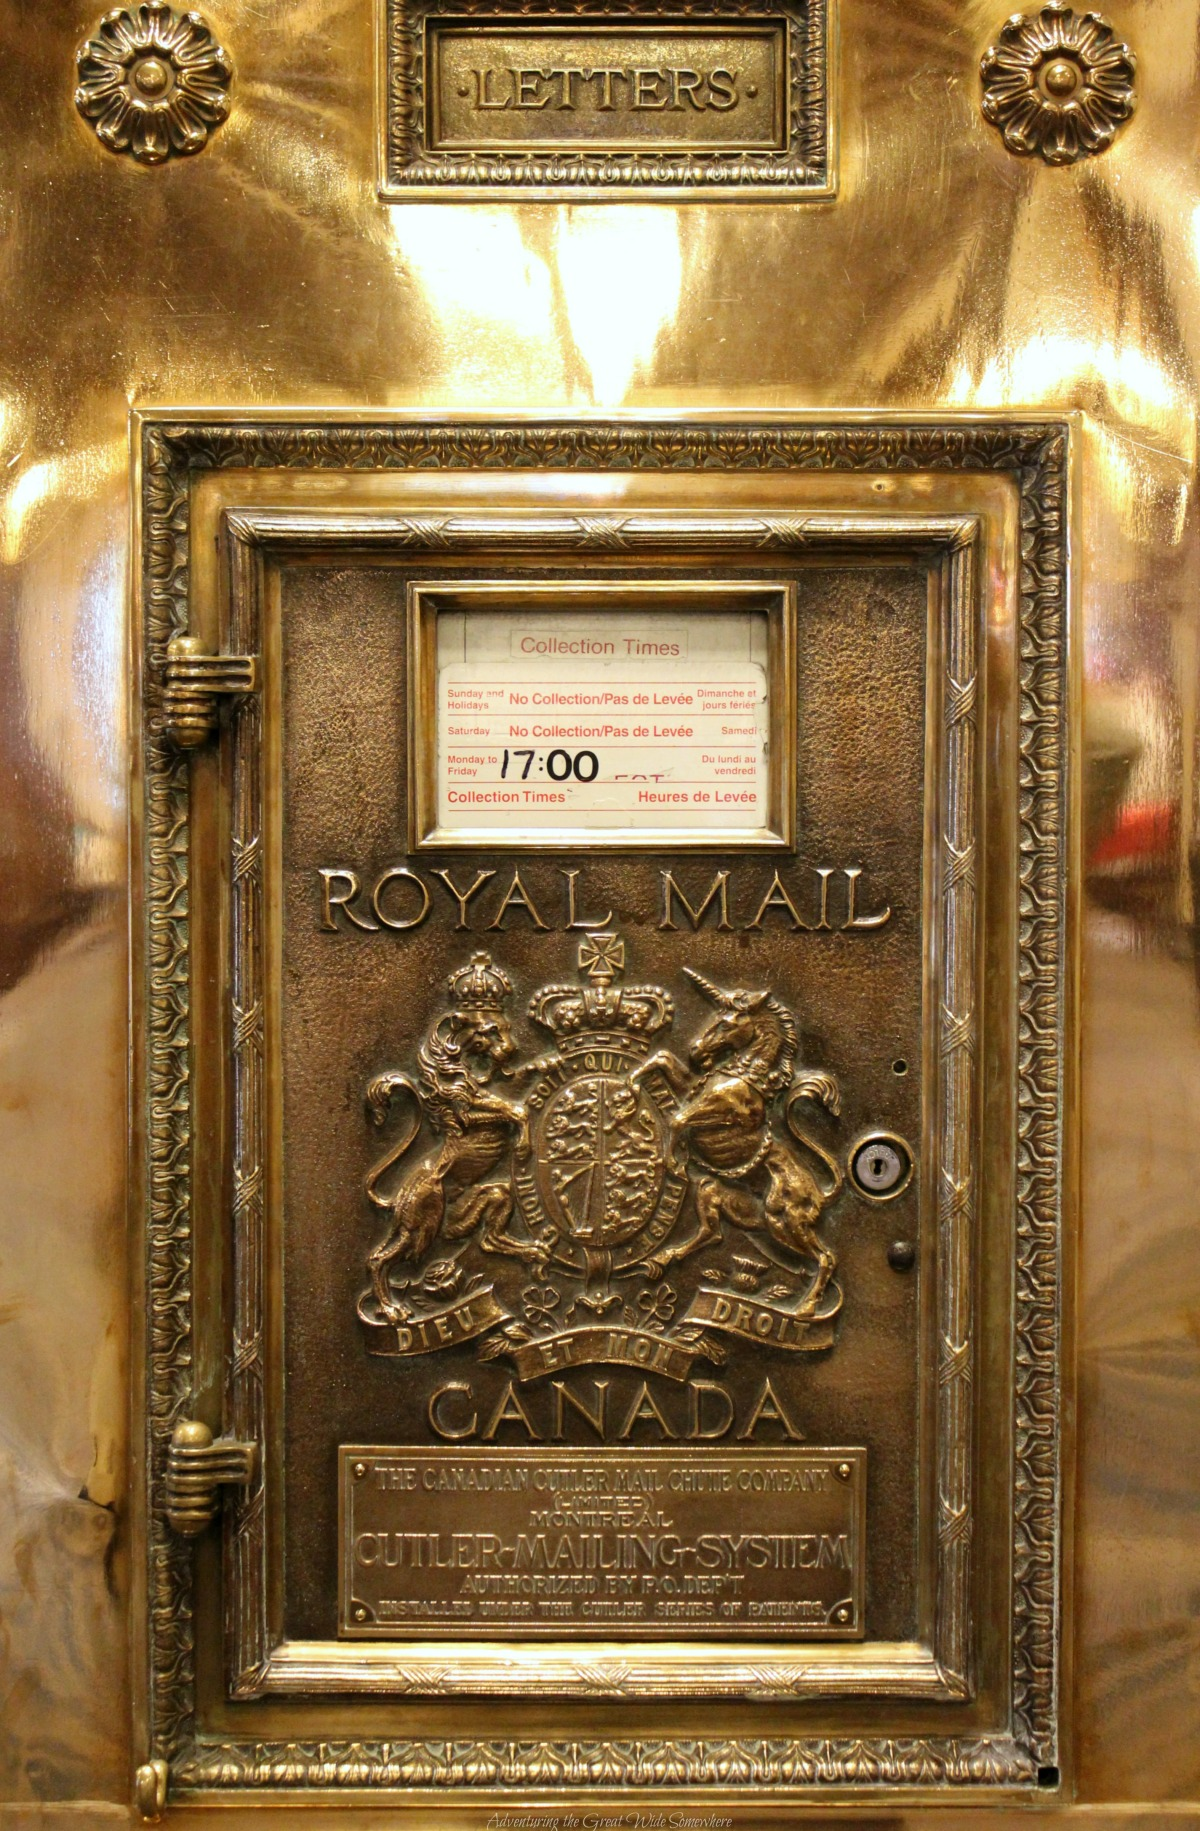 Royal Mail Collection Box at the Fairmont Empress Hotel, Victoria B.C.